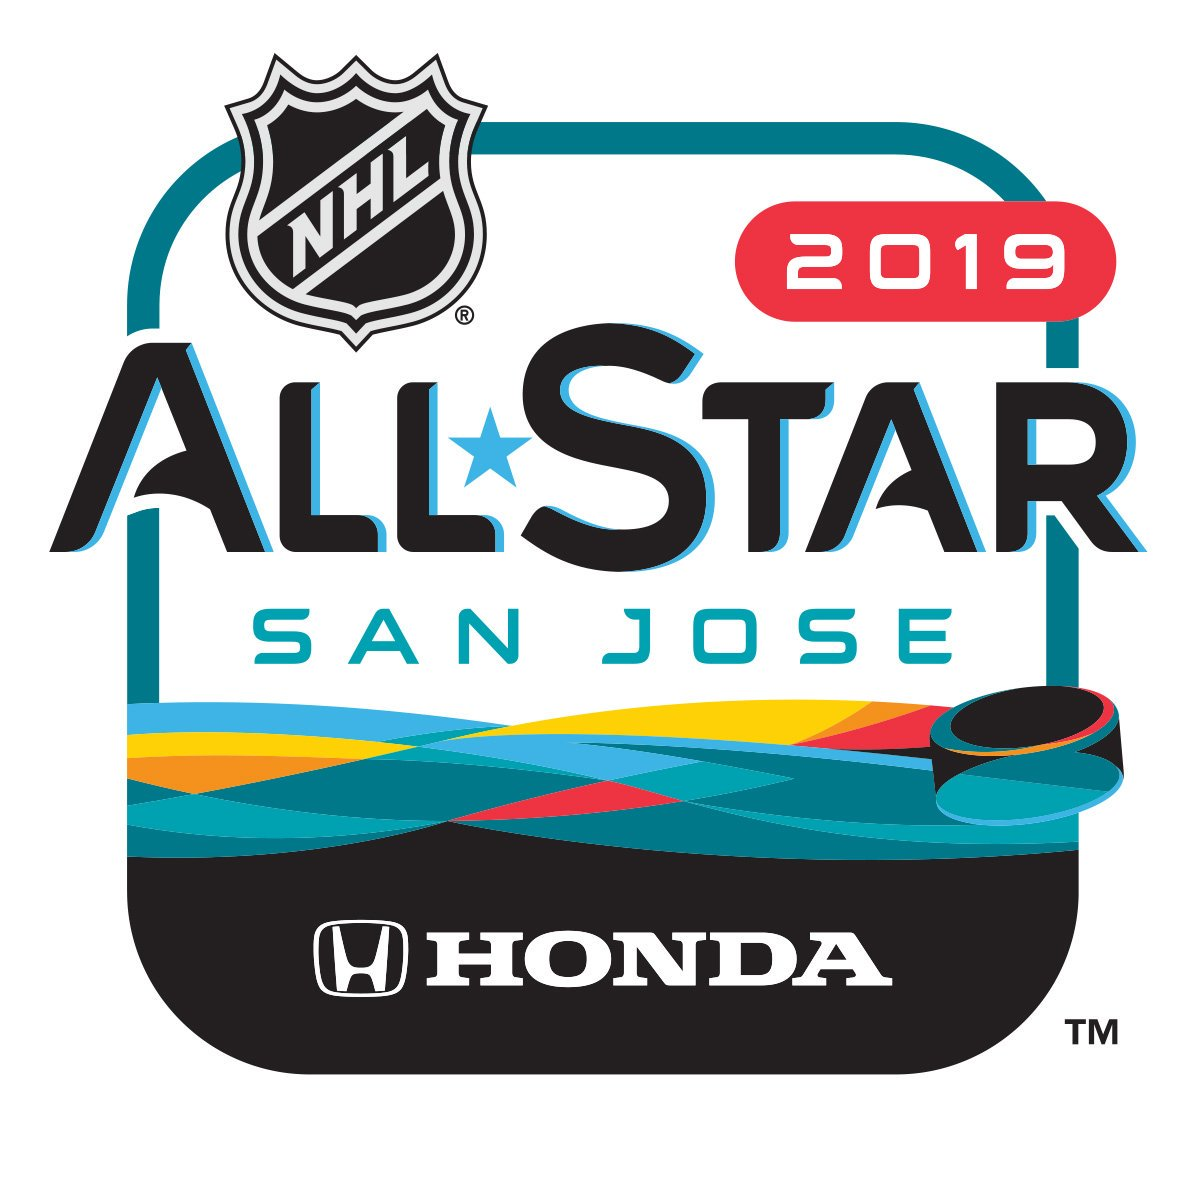 WANTED - 2018-19 NHL All Star Game patch worn during the first half of the 2018-19 season